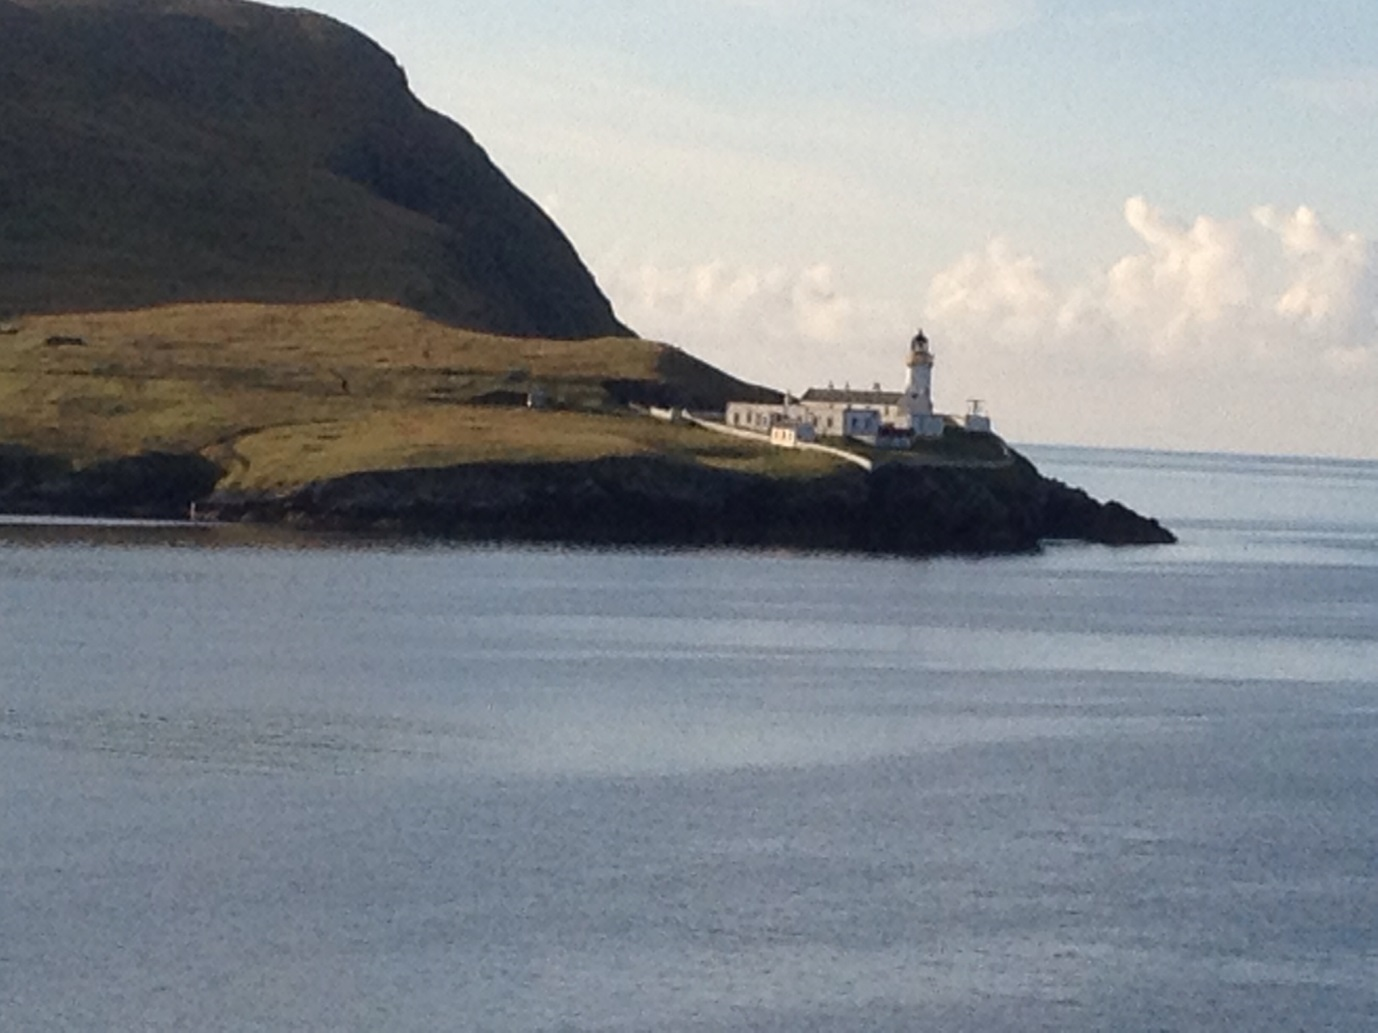 C:\Users\Virginia Rundle\Pictures\Shetland Photos\Lerwick Lighthouse.JPG